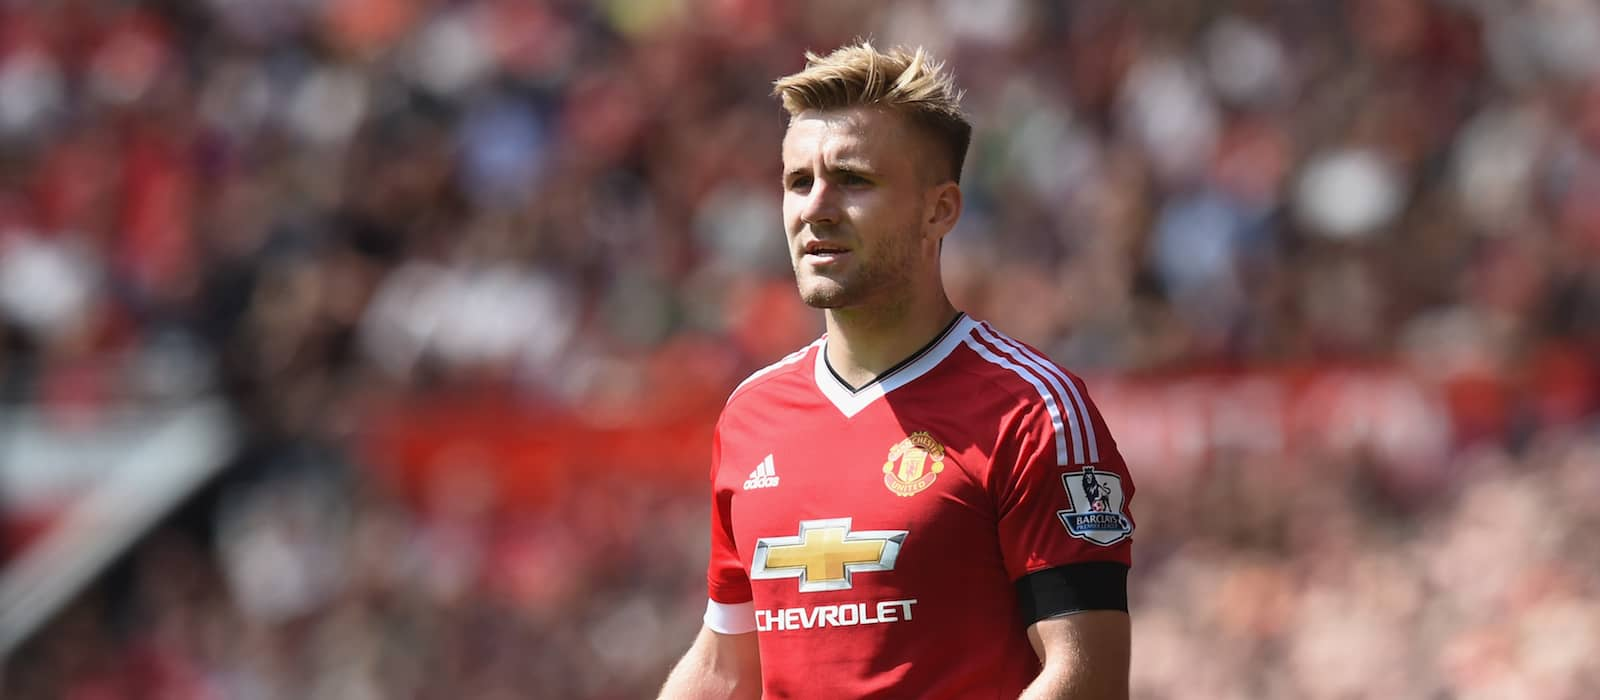 """I'll be ready"": Luke Shaw preparing for Manchester United return"